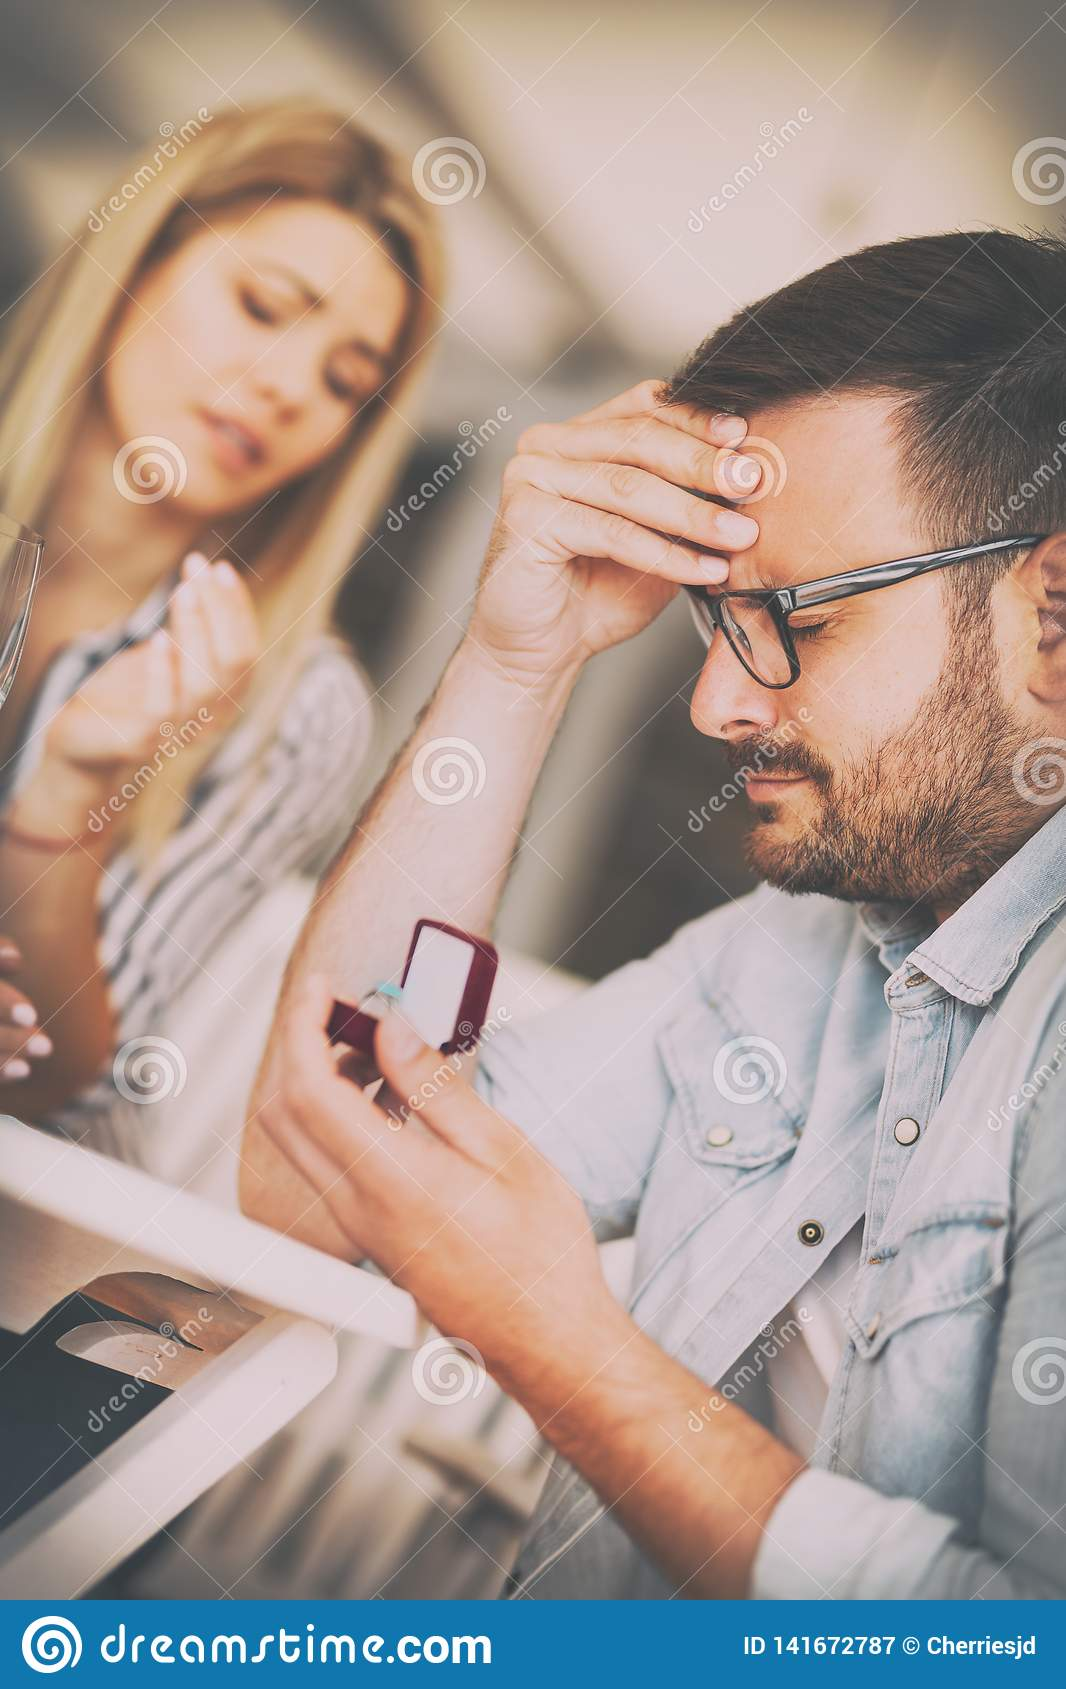 Young frustrated sad man holding wedding engagement ring, proposal rejection